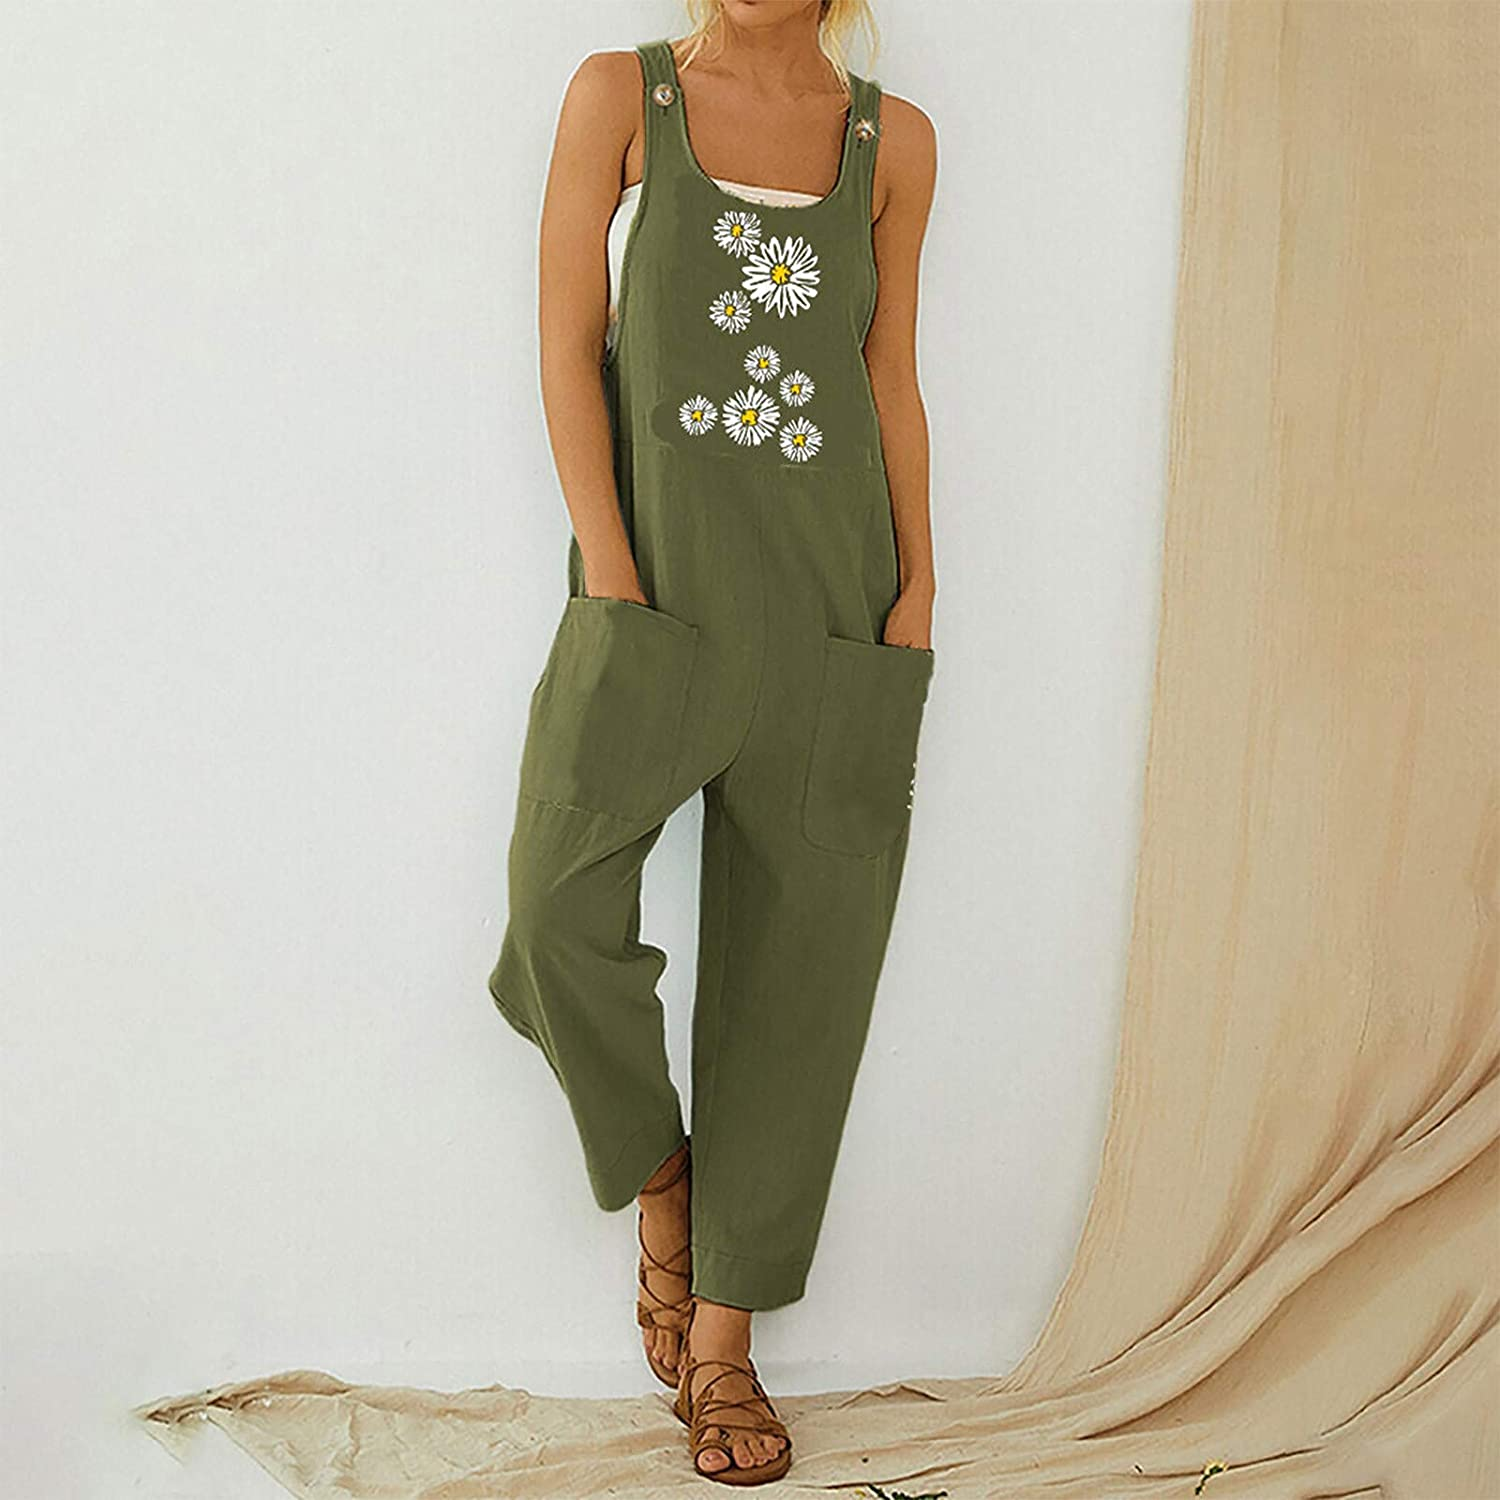 Womens Summer Fashion Casual Ethnic Style Printed Button Pocket Loose Suspenders Overalls Trousers Jumpsuit Romper Pants